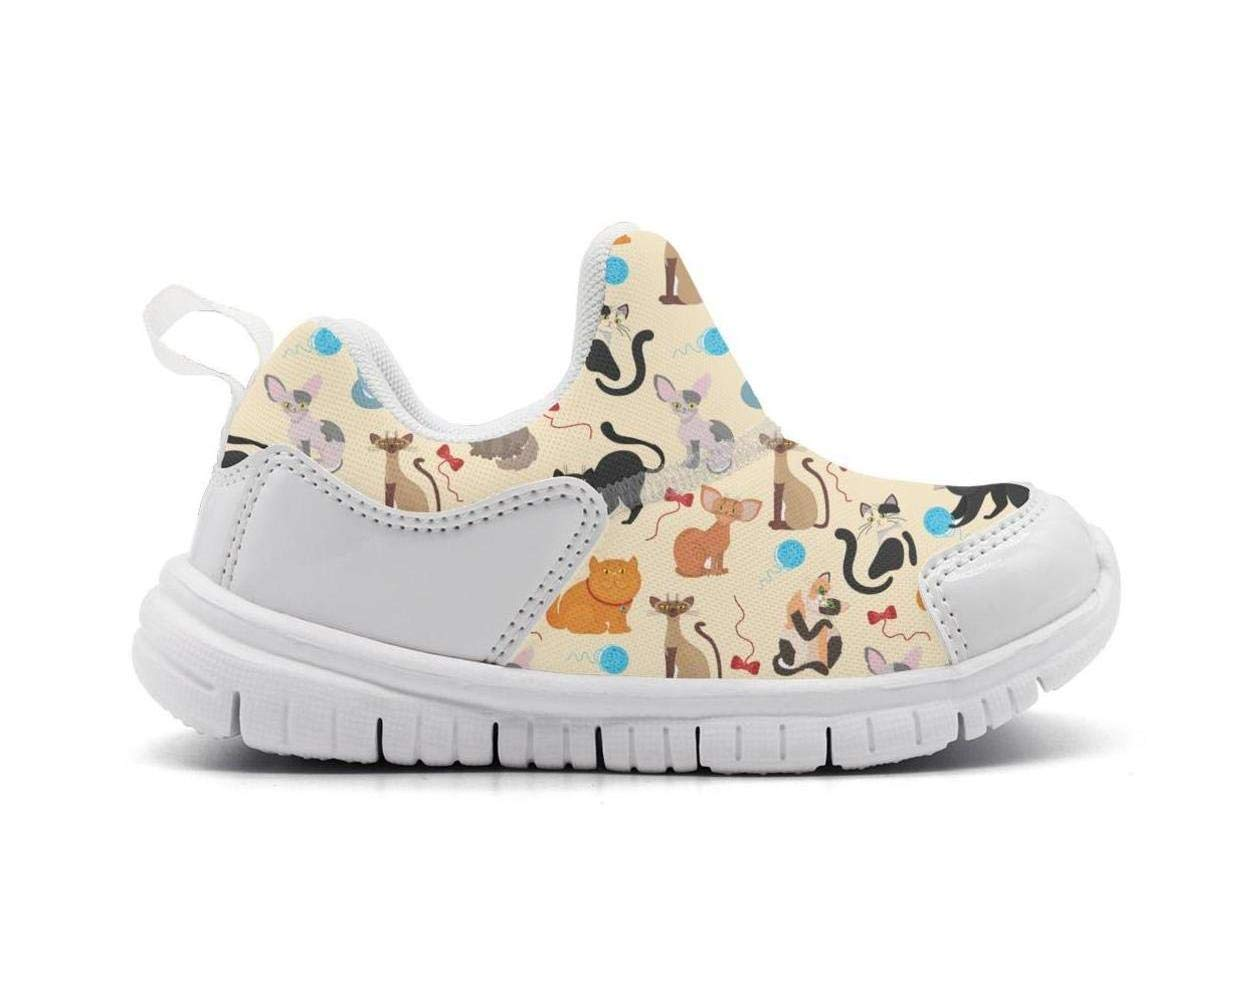 ONEYUAN Children Persian Cat and Sphynx Play Ball Kid Casual Lightweight Sport Shoes Sneakers Walking Athletic Shoes